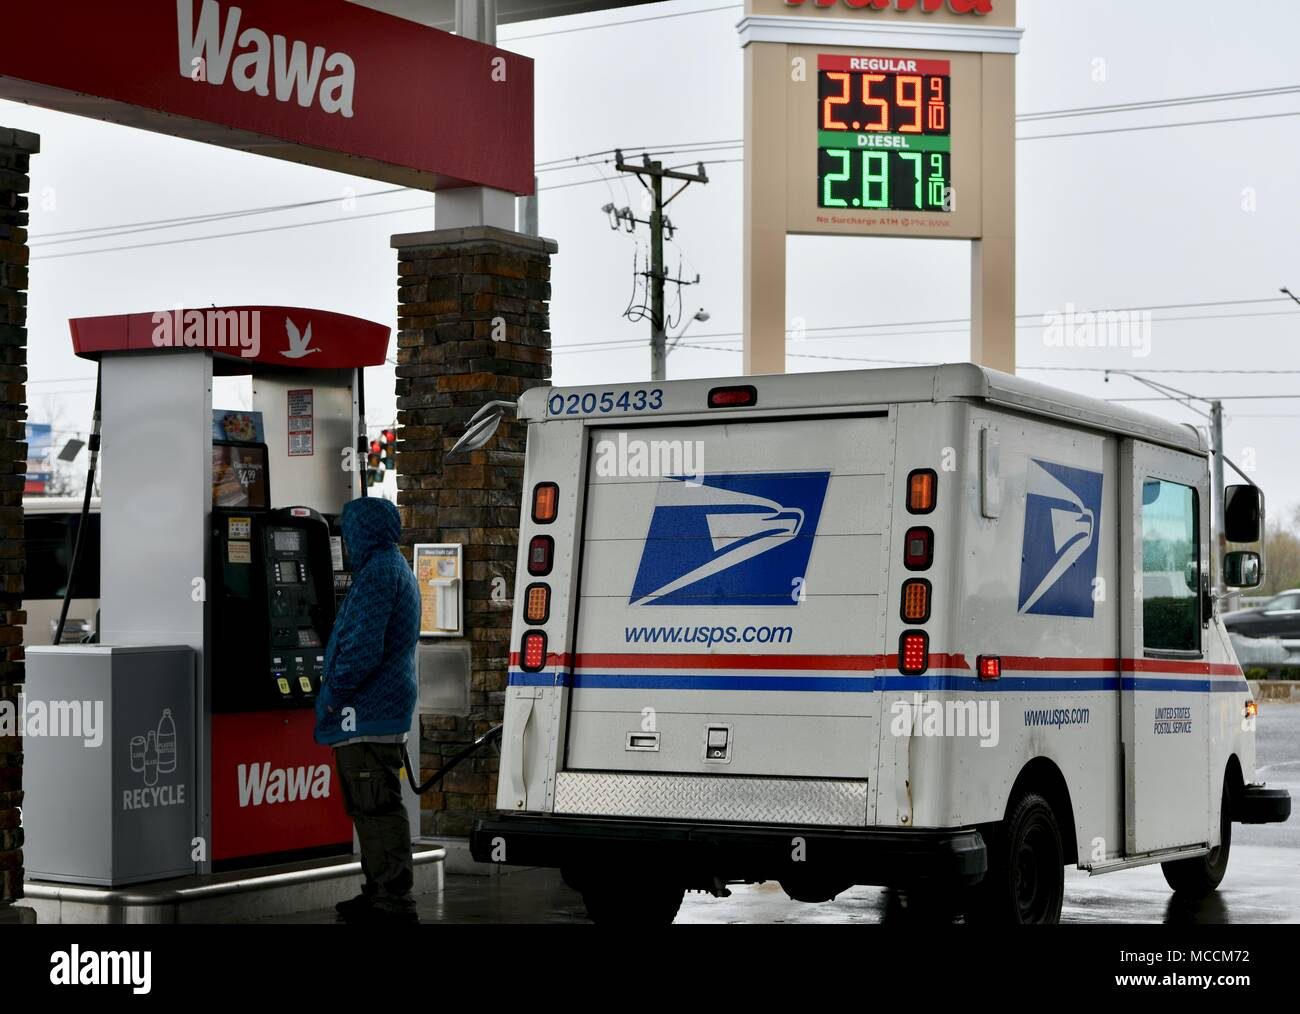 united states postal service (usps) van filling up on gasoline in delaware,  usa